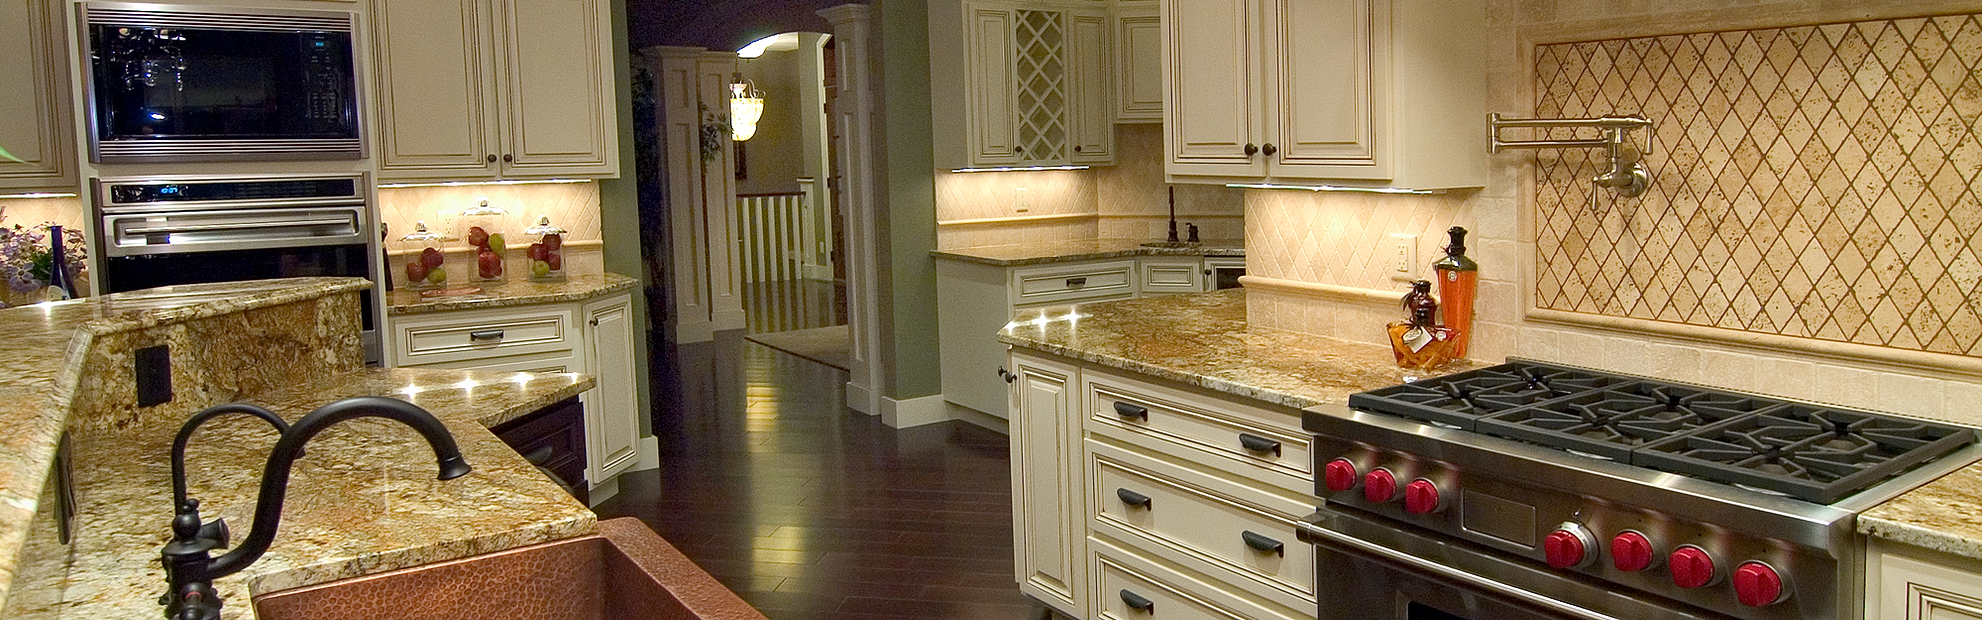 Home Design Consultations, Interior Design, Home Staging, Remodel,  Construction Consultant, Color